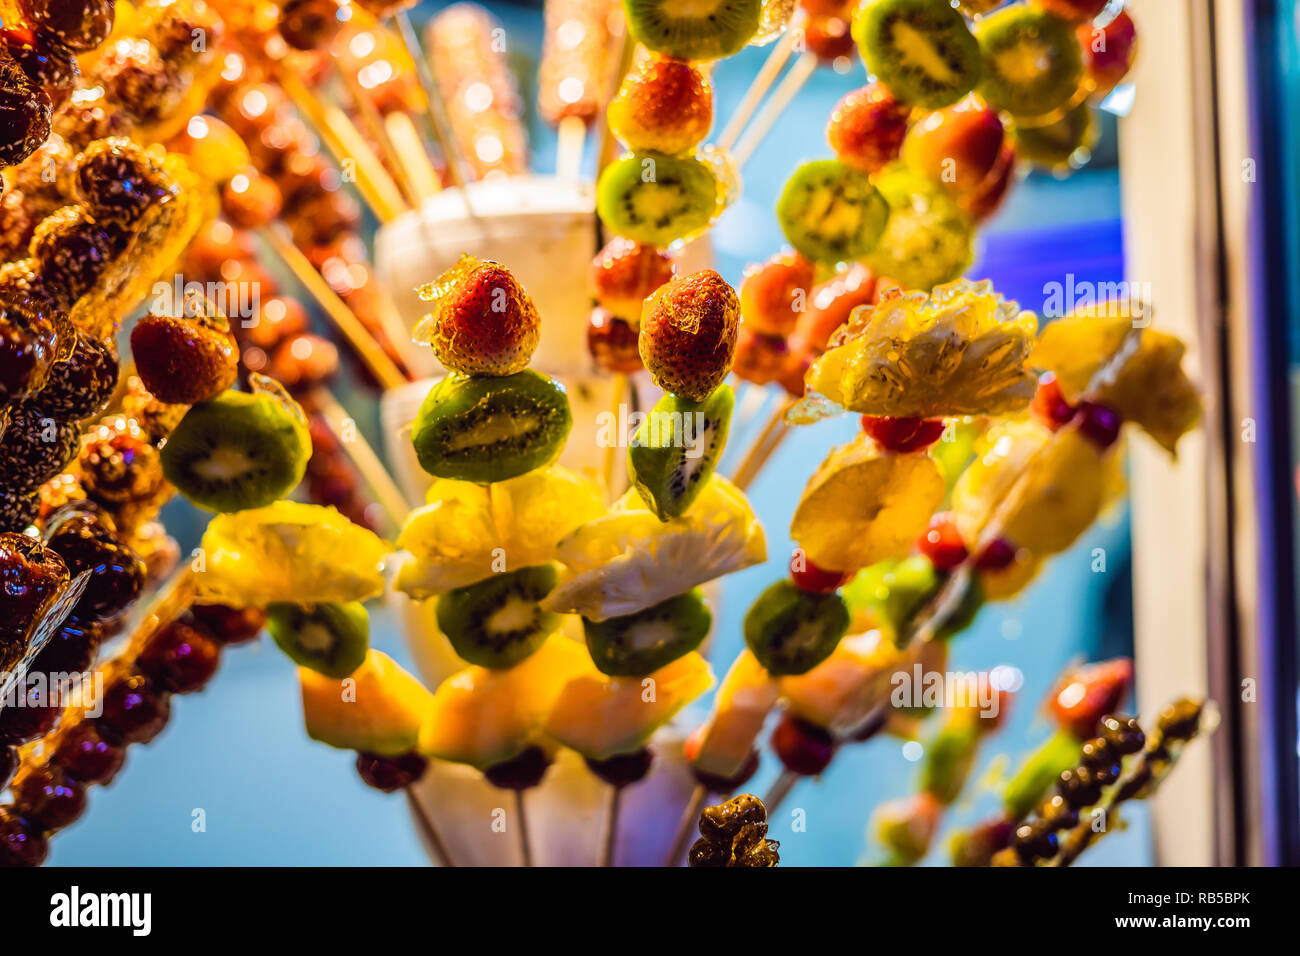 Traditional Chinese Dessert - Candied Fruit on a Wooden Stick - Stock Image